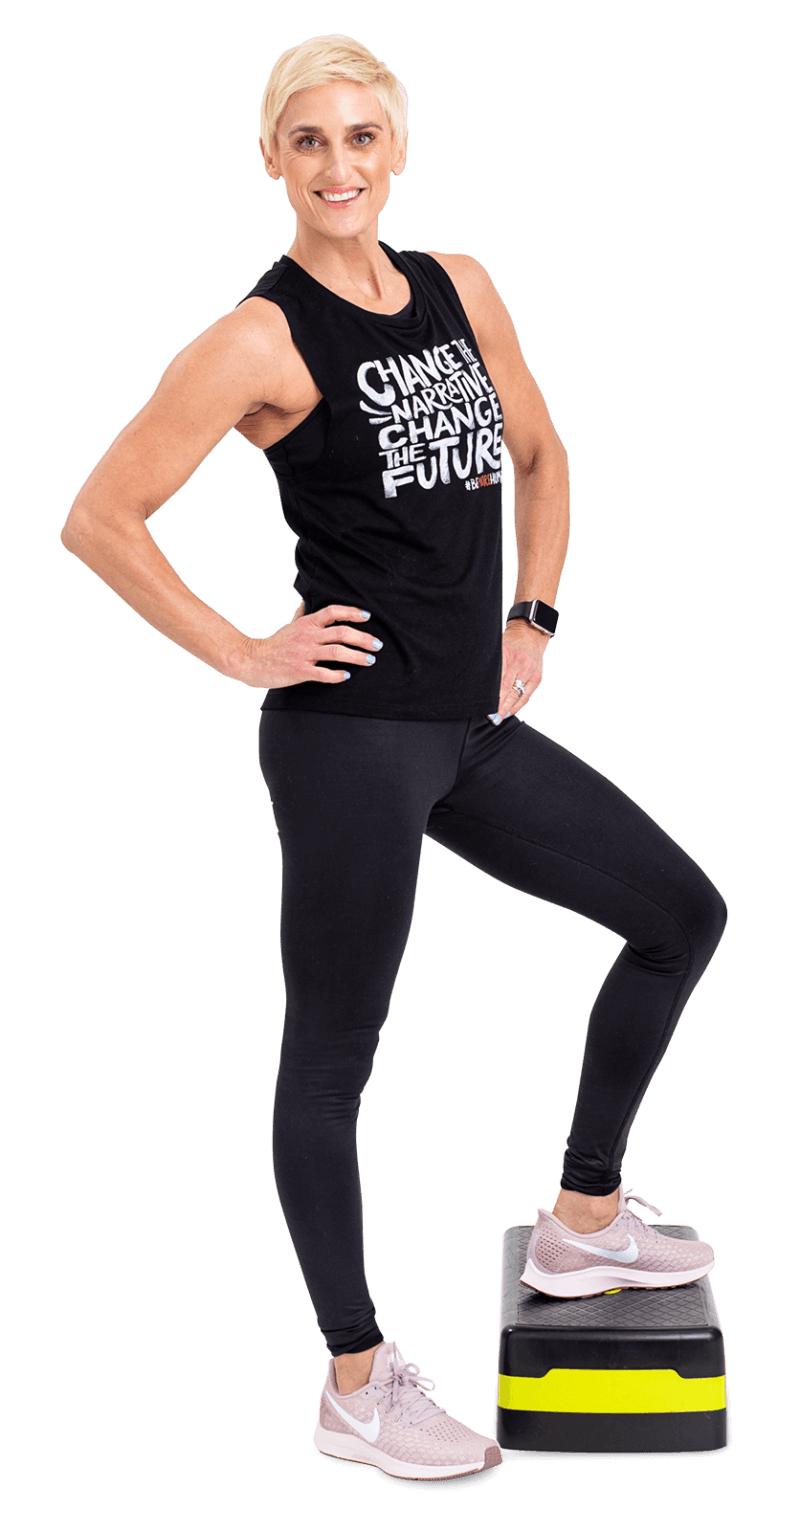 Join Julie Voris, Beachbody Coach for fitness tips, workouts and nutrition